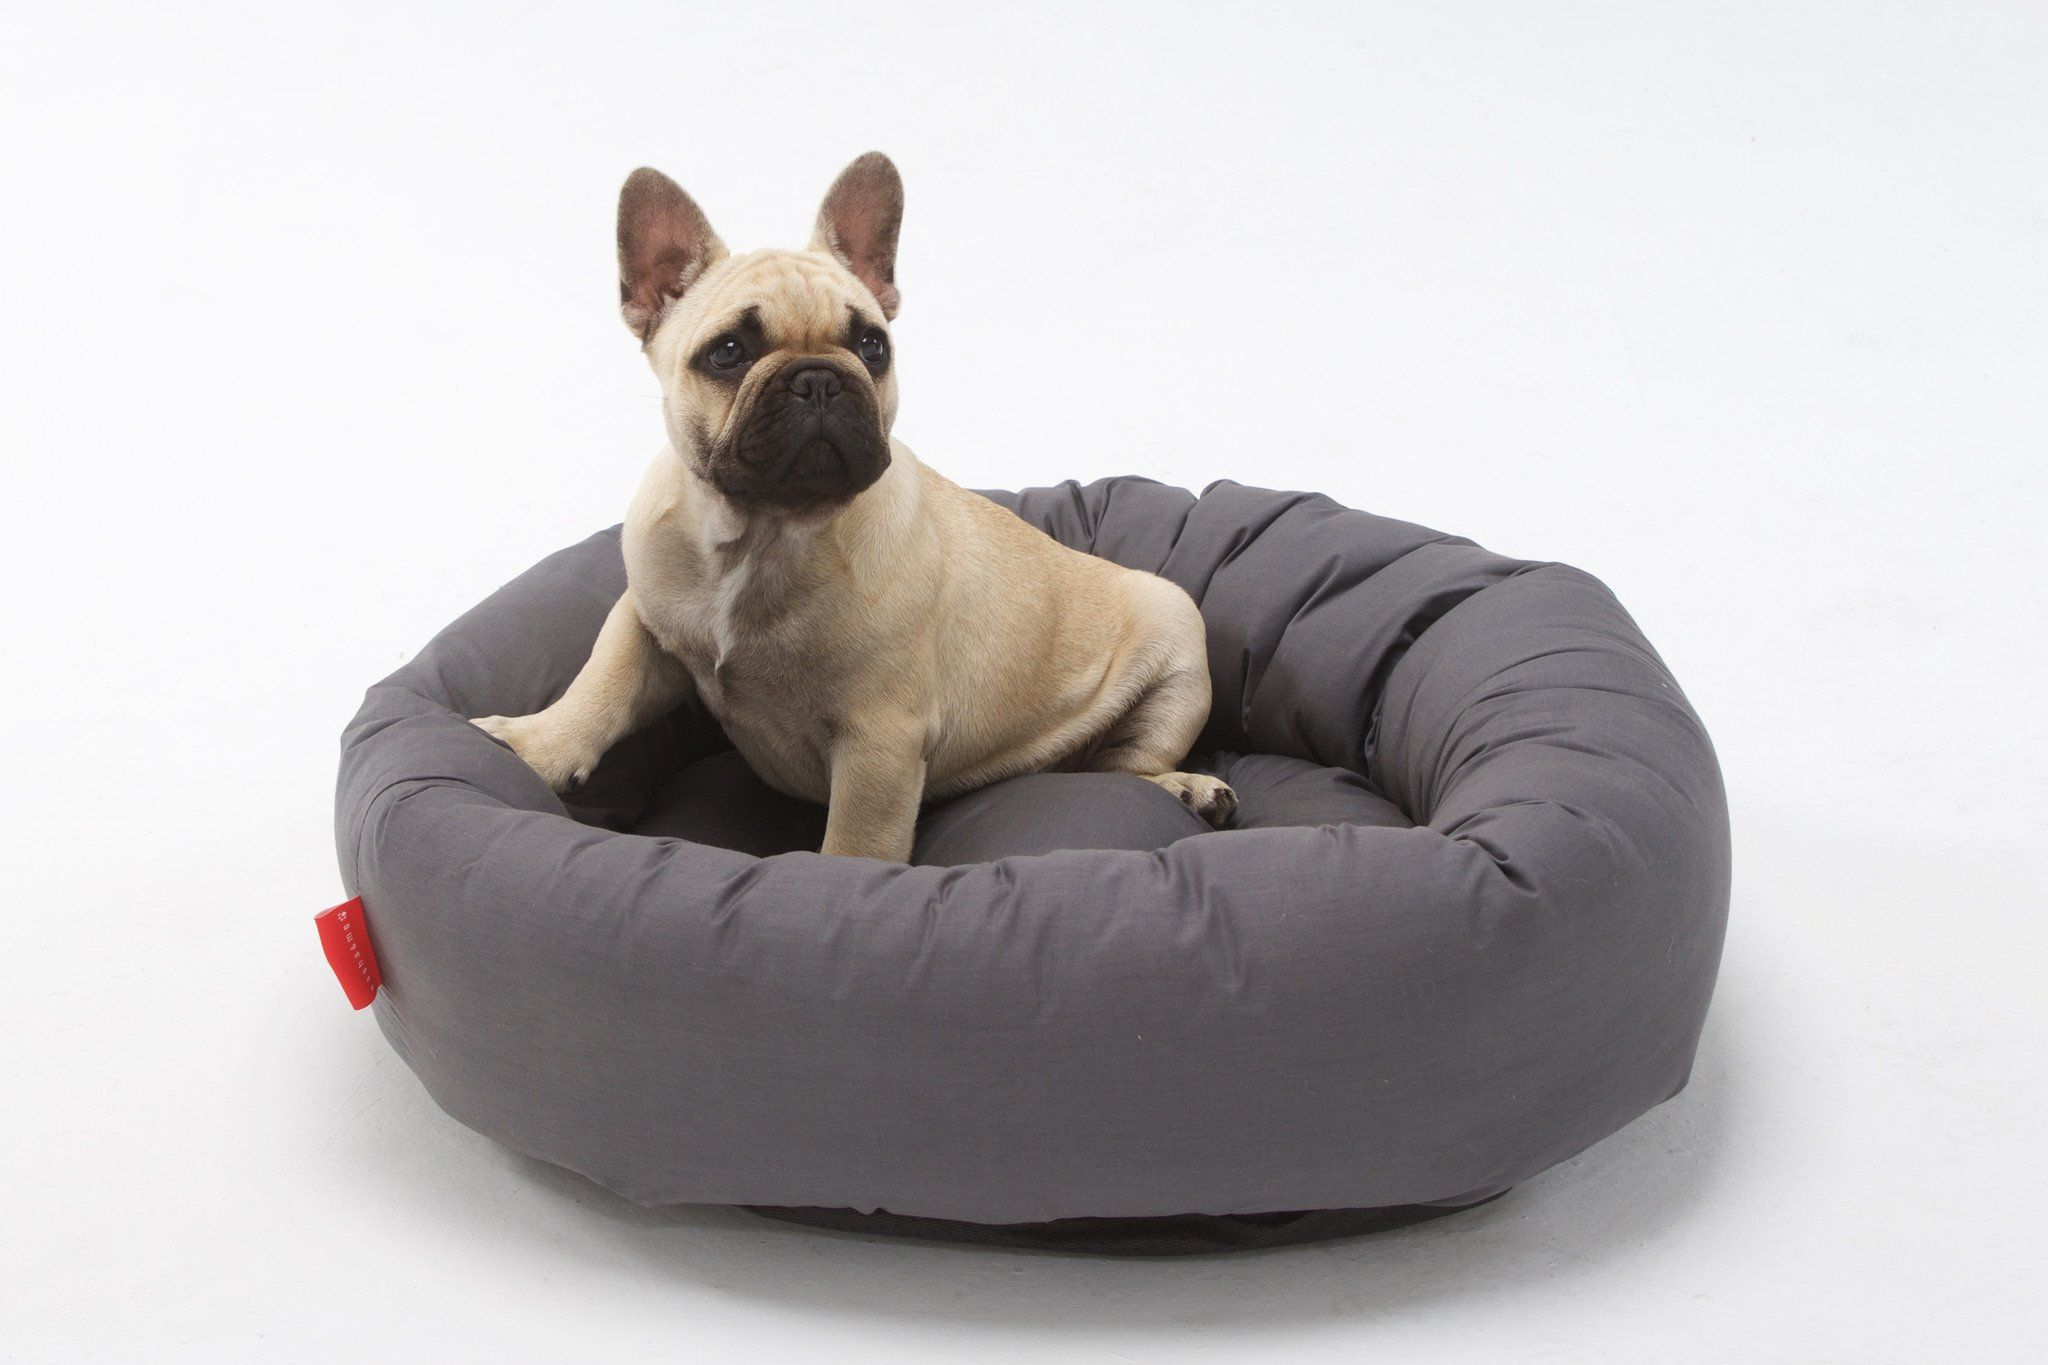 Uvo bed for small dogs1 Dog accessories, Dog bed luxury